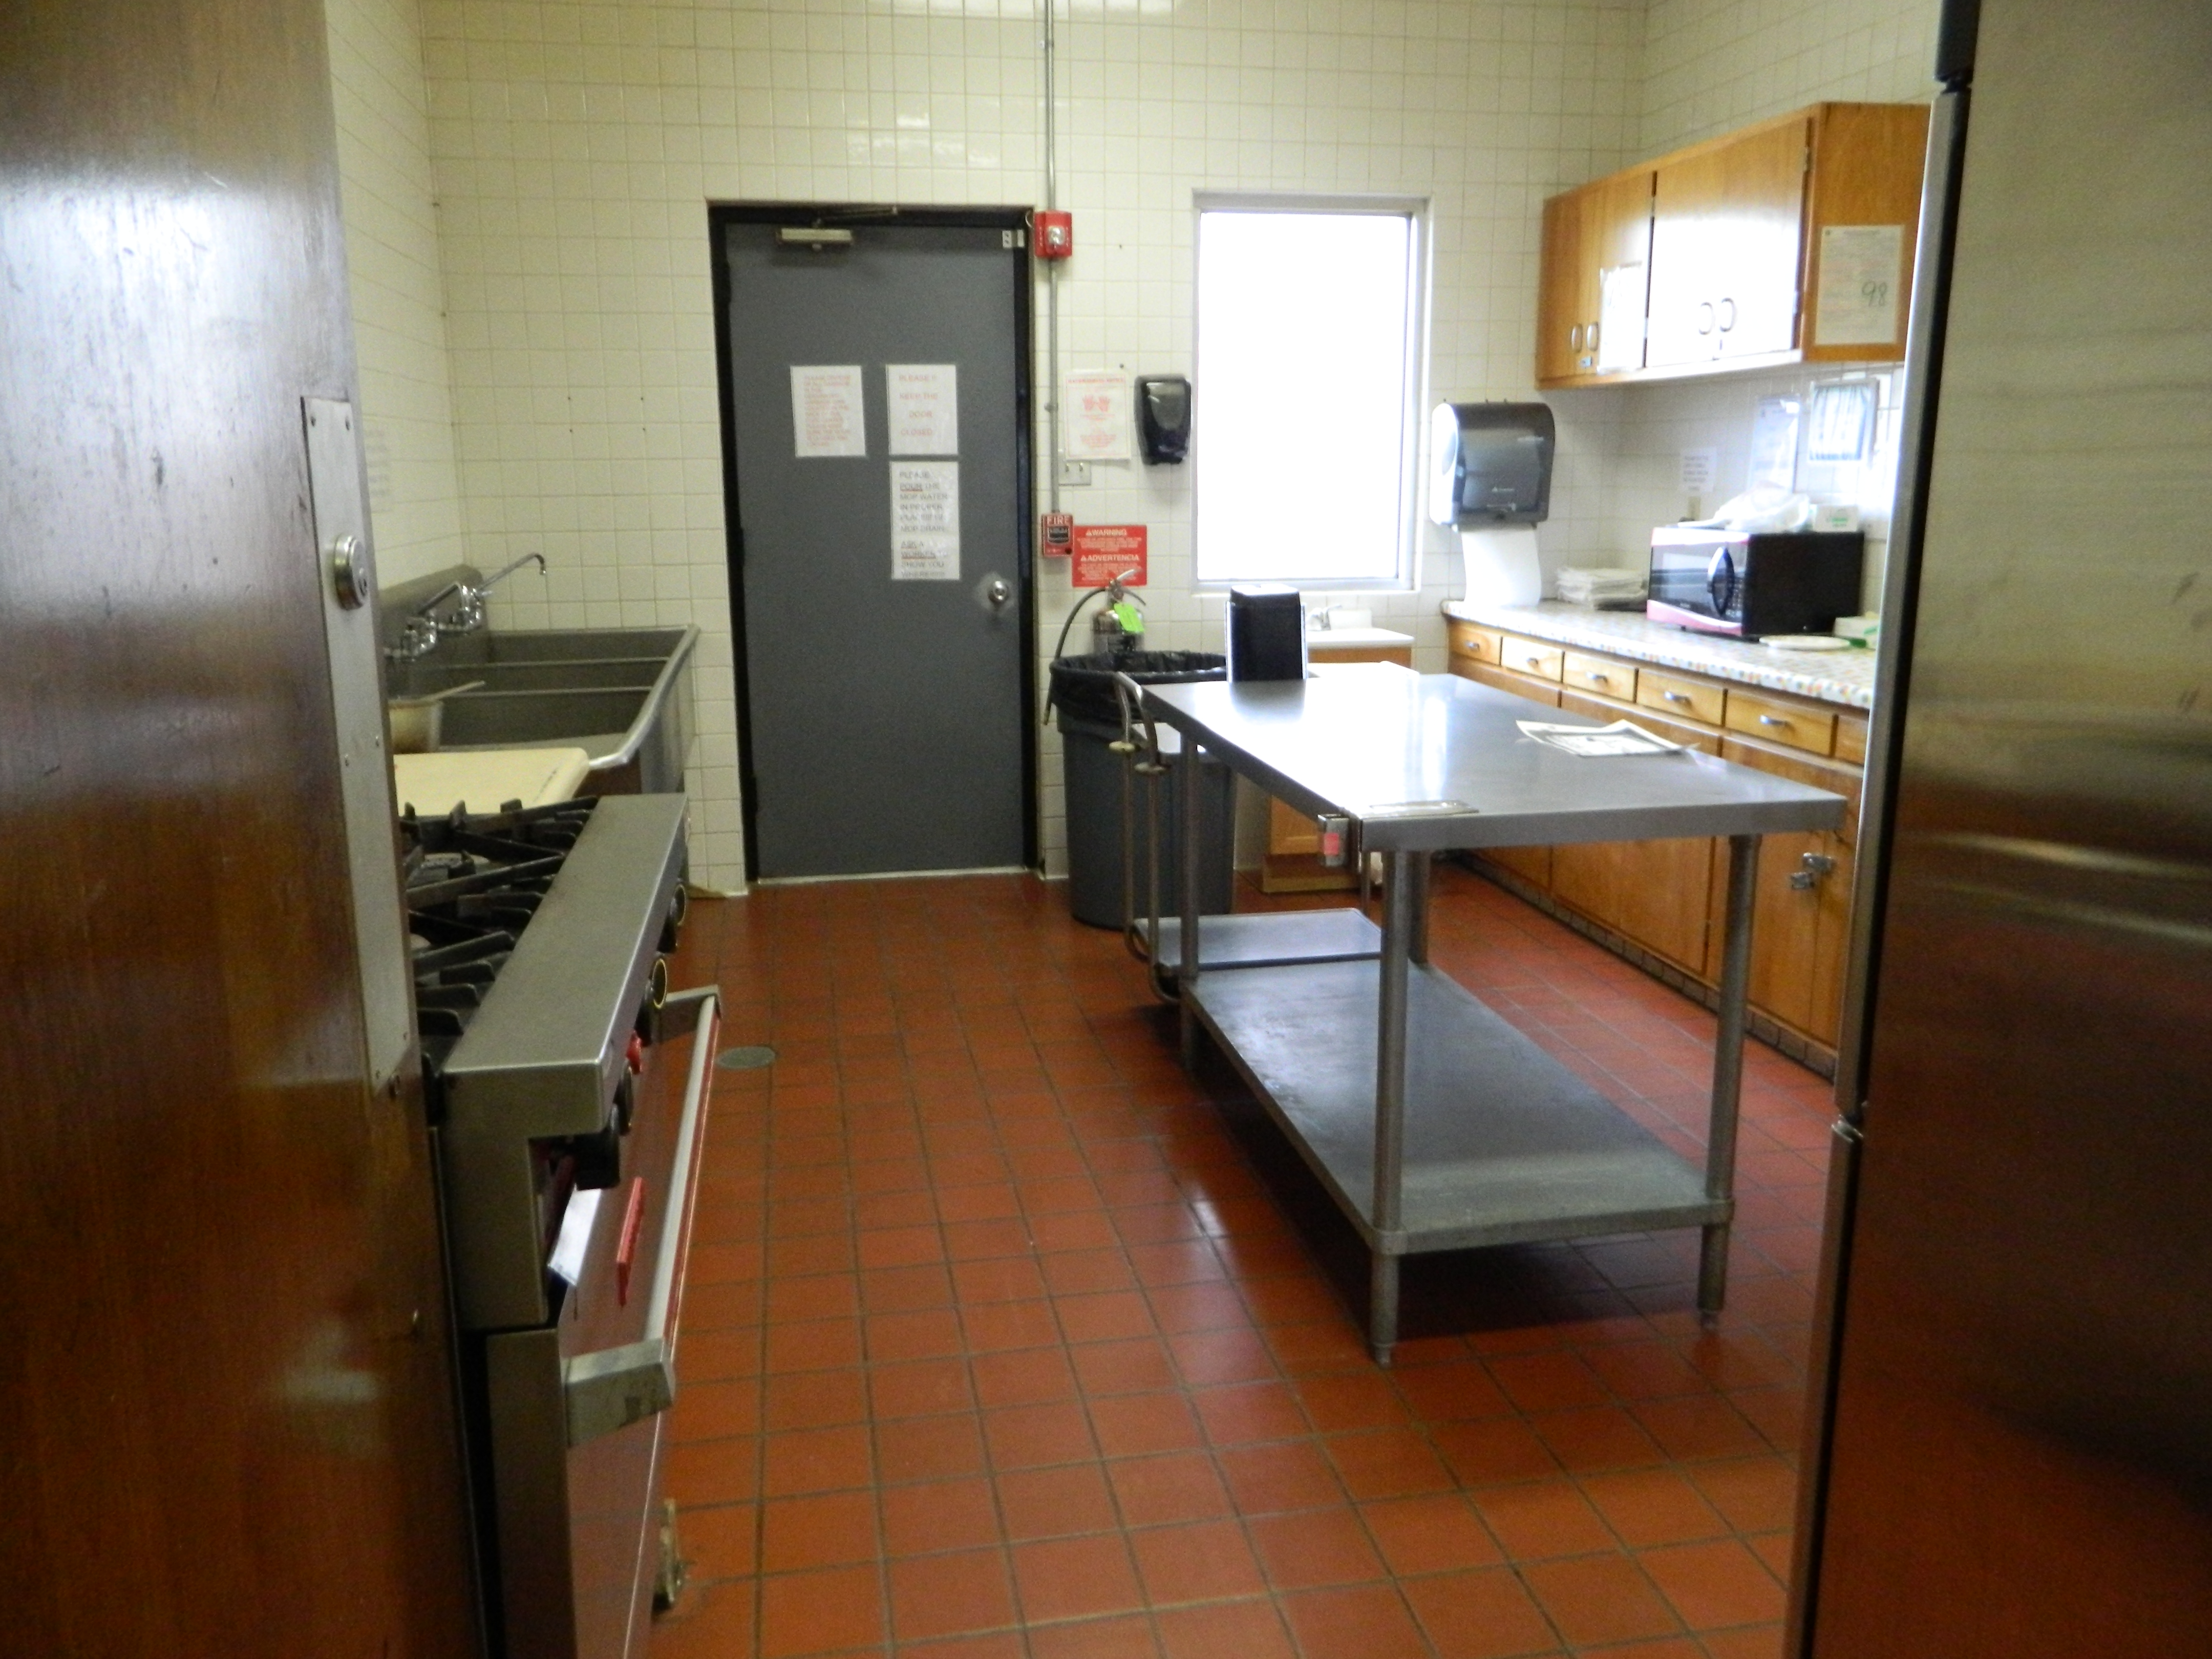 Civic Center Kitchen